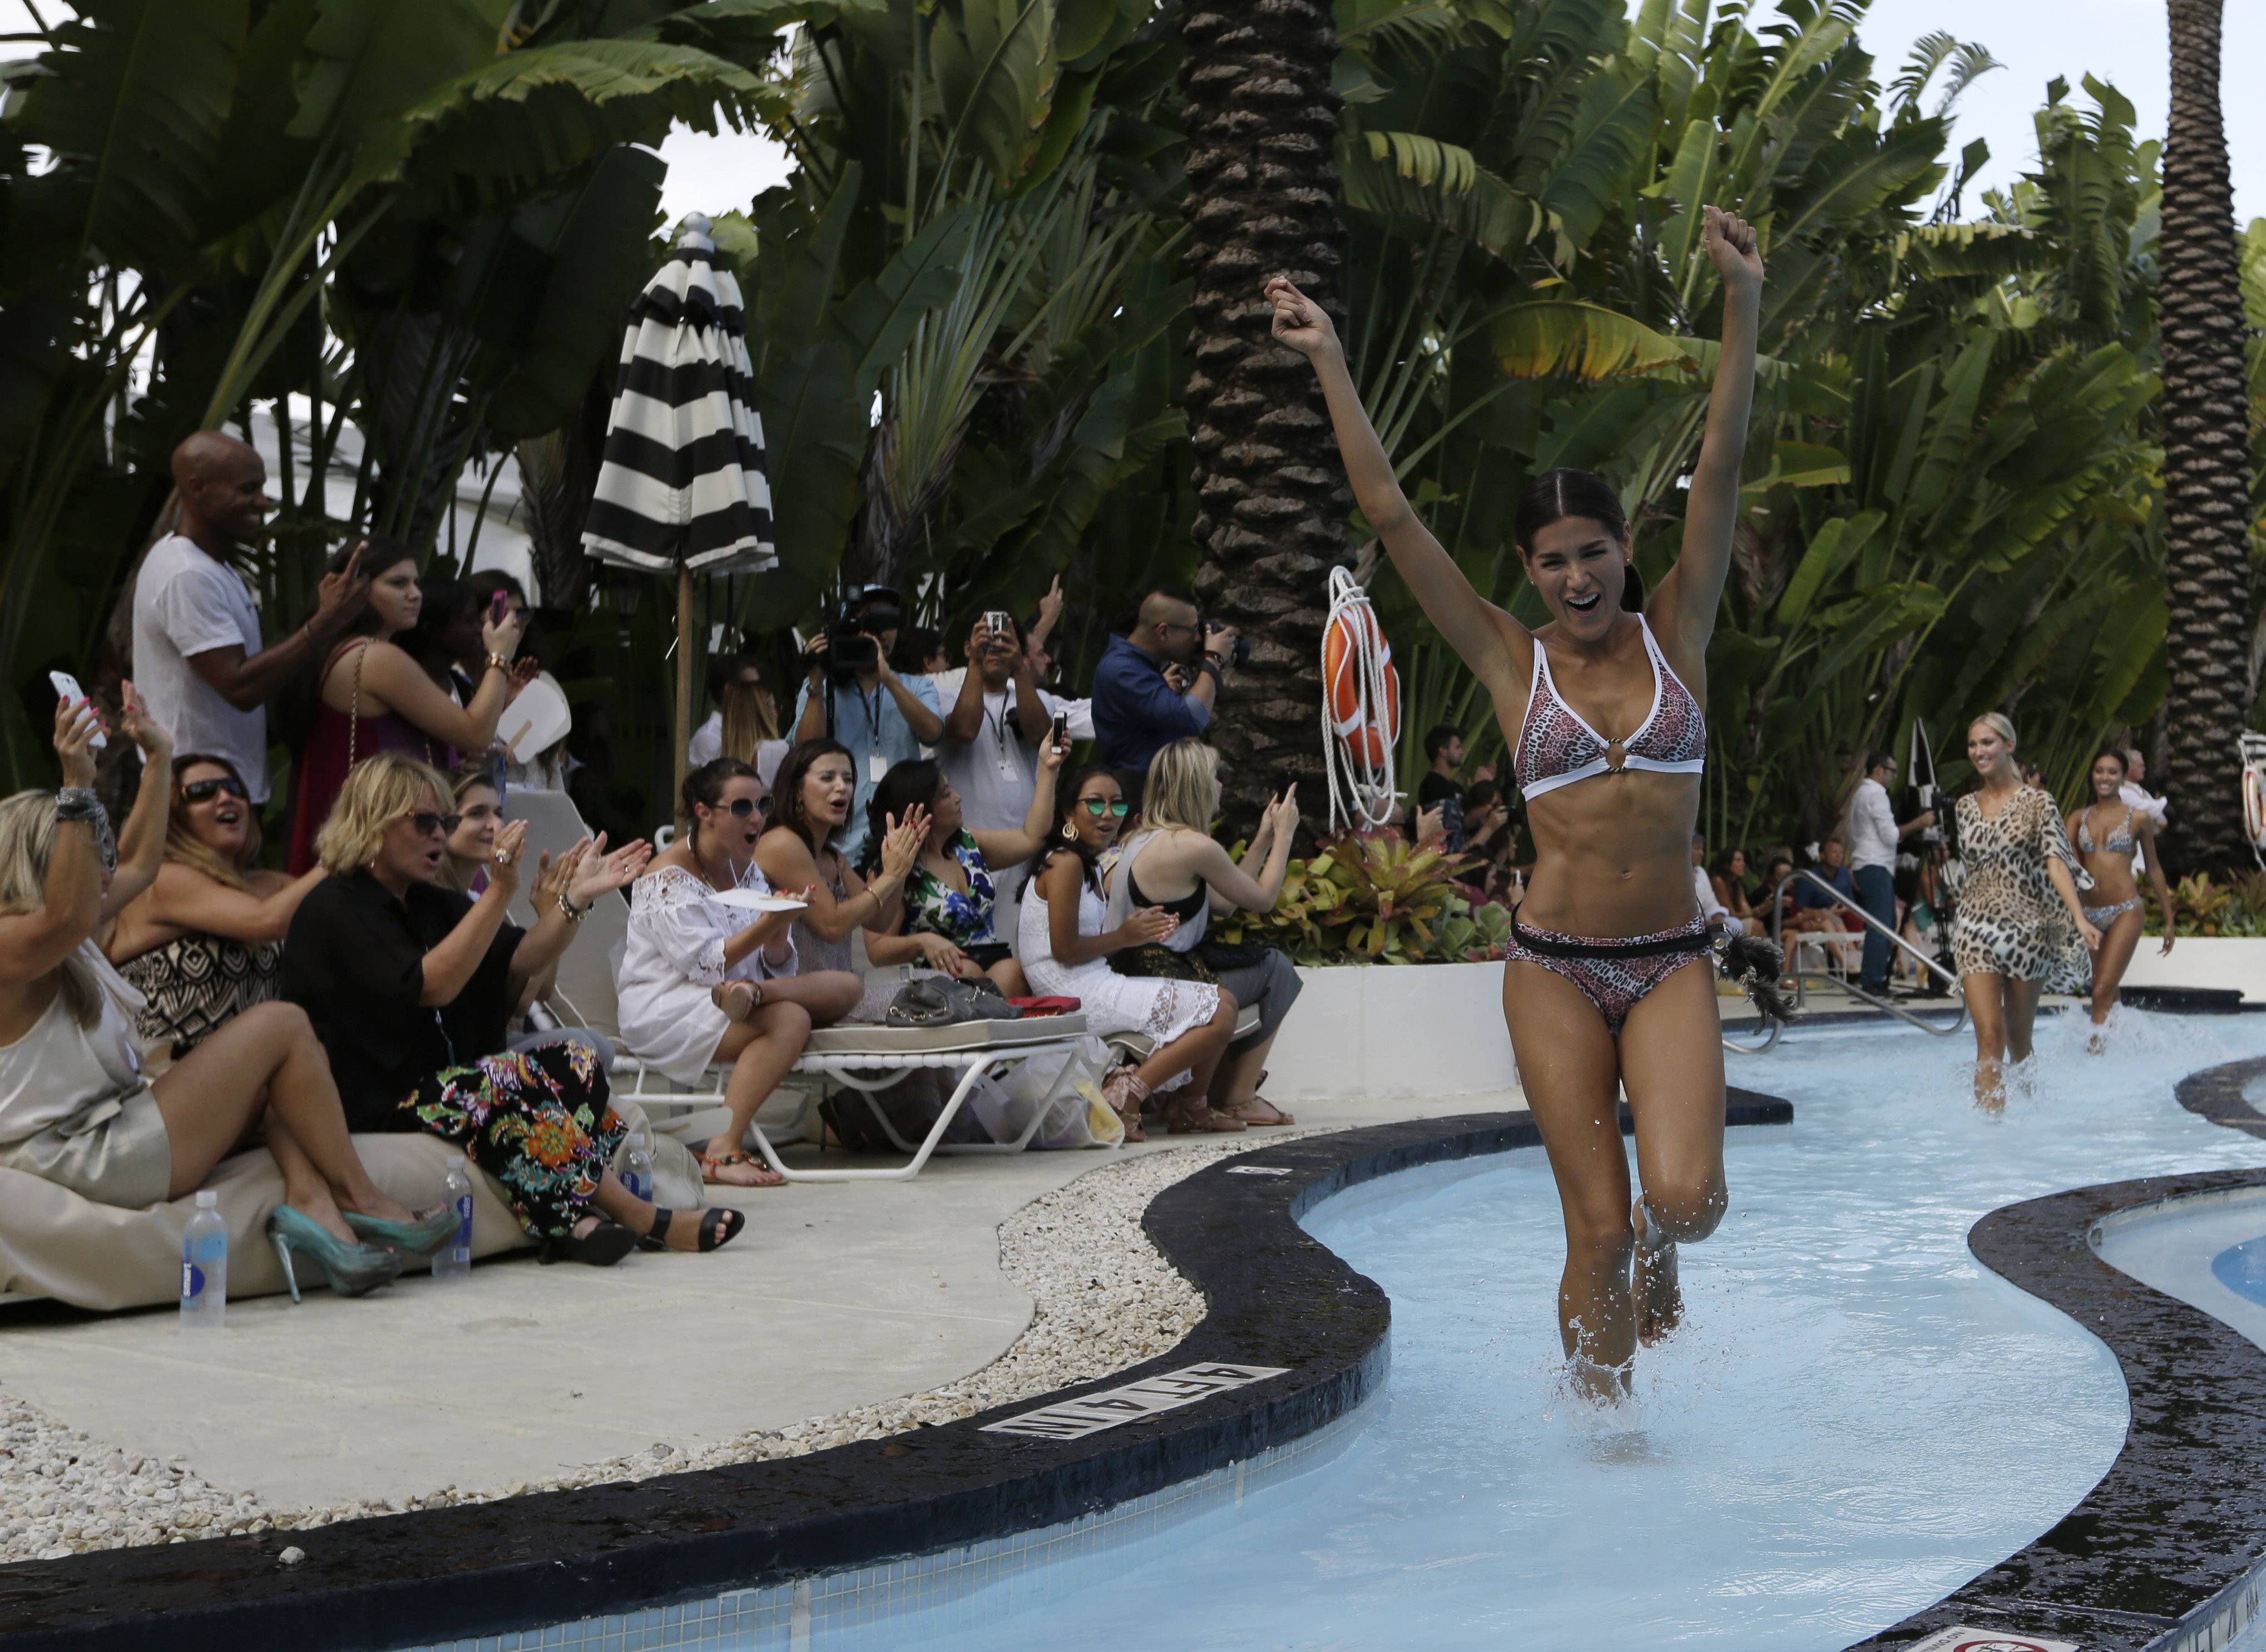 Models walk in a pool wearing swimwear designed by Poko Pano during the Mercedes-Benz Fashion Week Swim show Frida in Miami Beach, Fla.